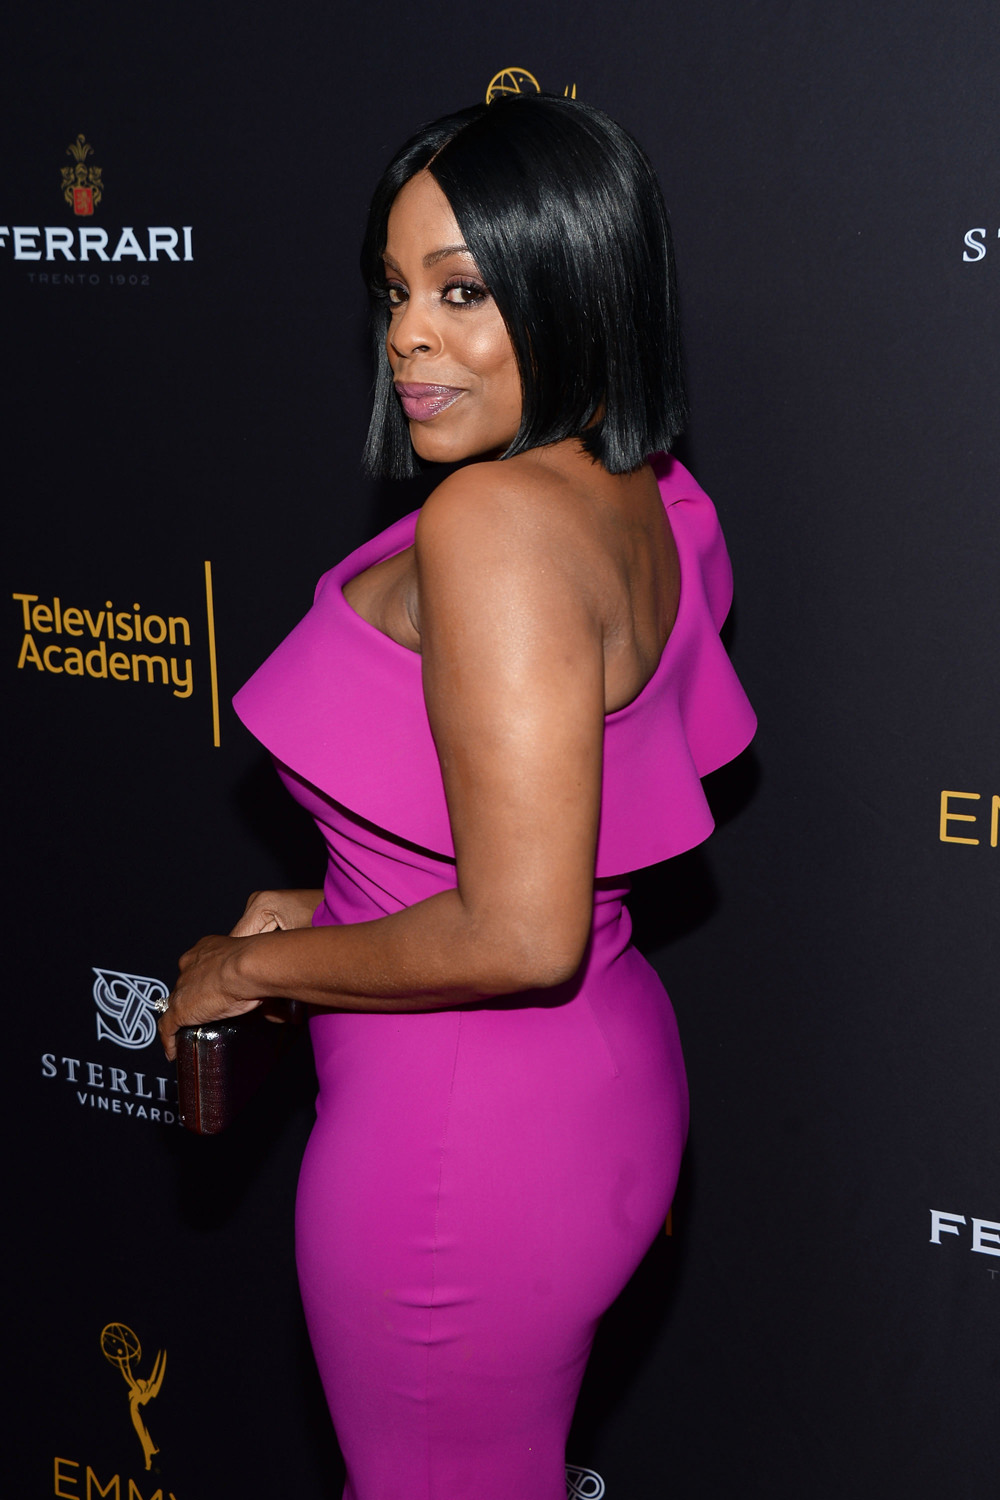 niecy-nash-television-academy-performers-peer-group-celebration-red-carpet-fashion-tom-lorenzo-site-1